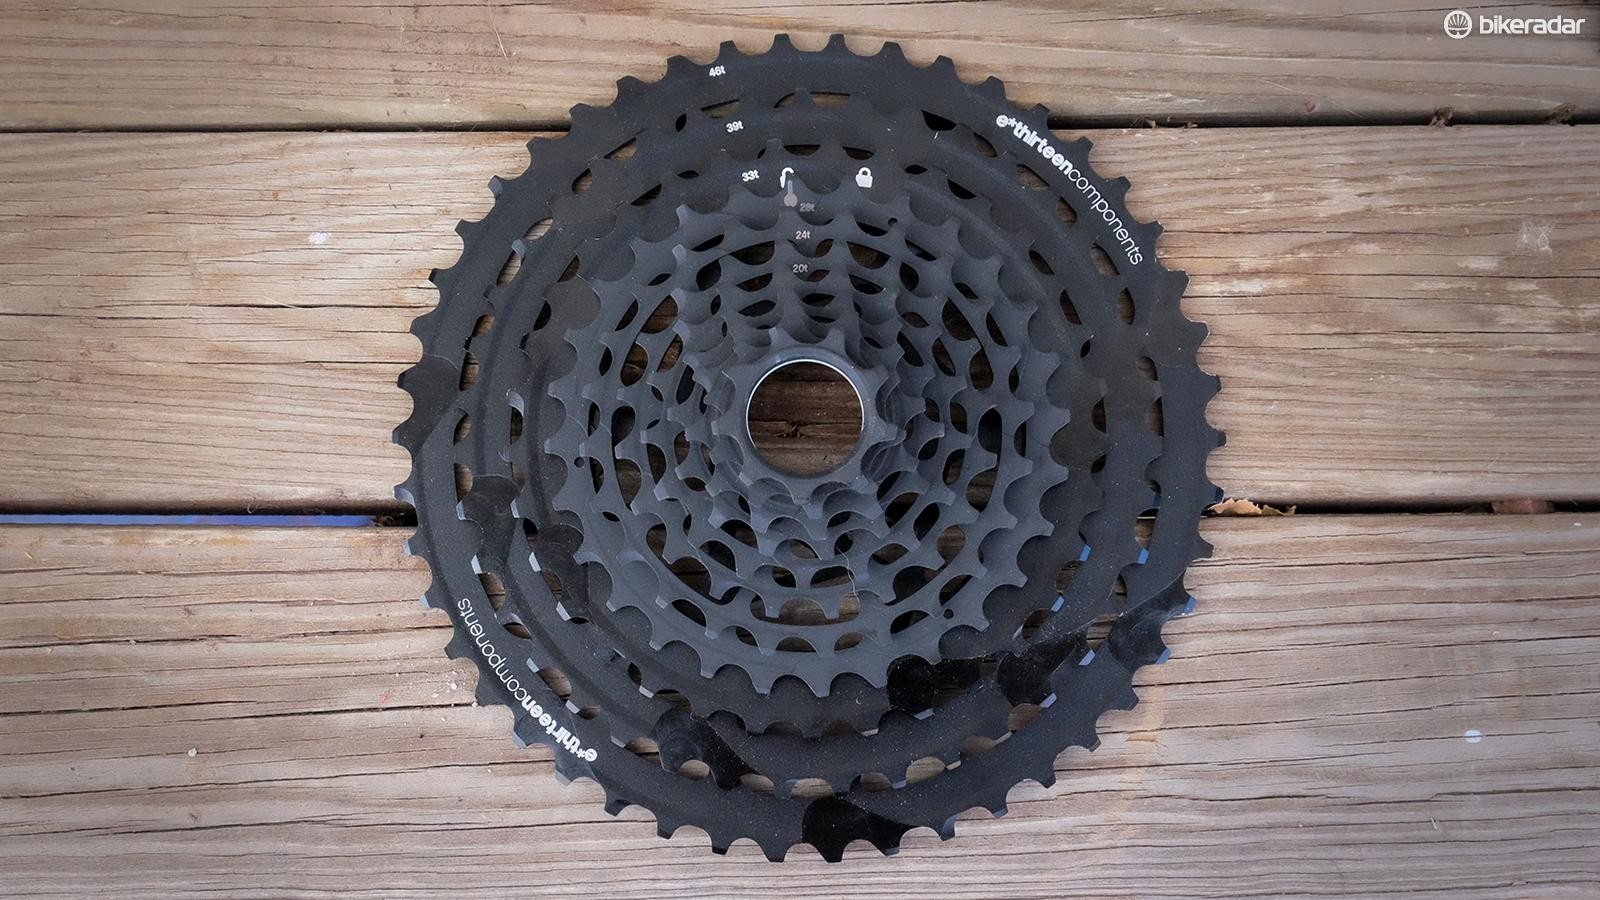 Respectable weight and a very wide range may make the TRS Race cassette a serious contender with 12-speed groups